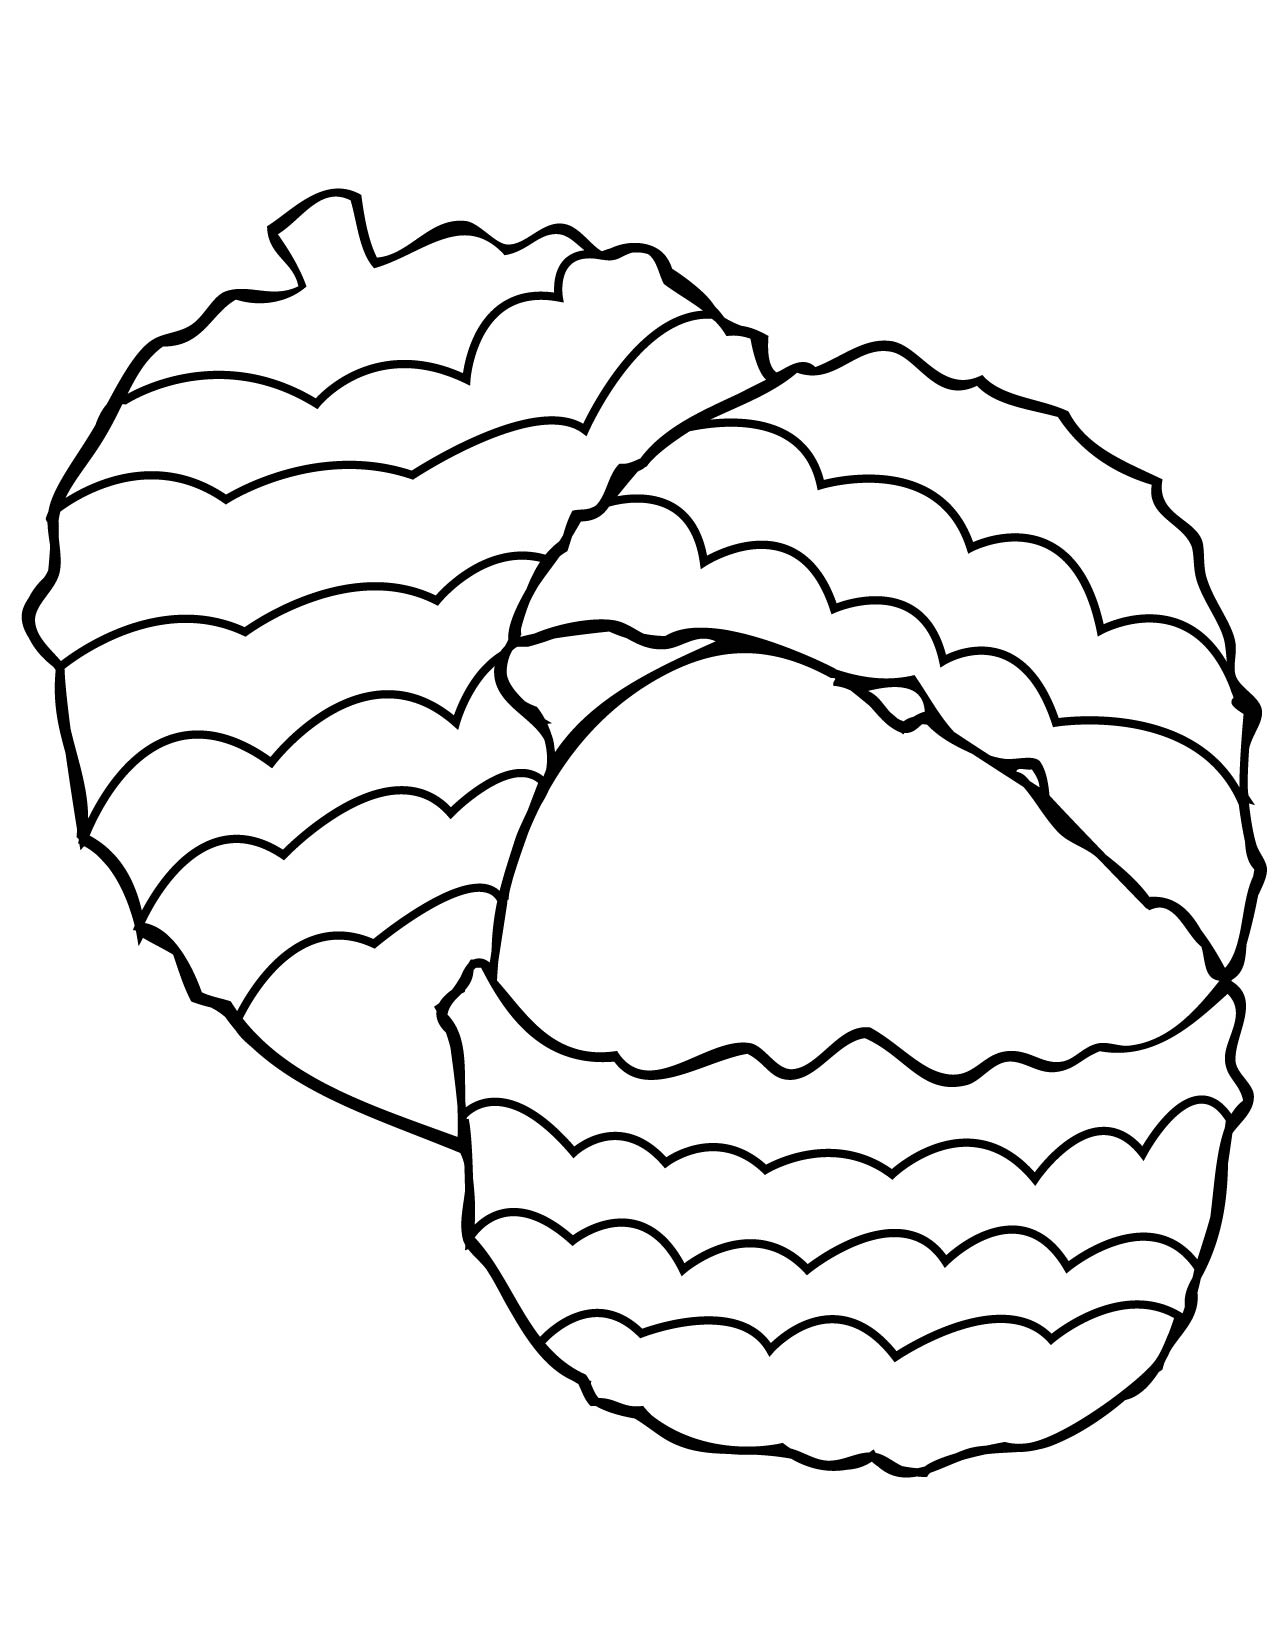 lychee coloring page handipoints